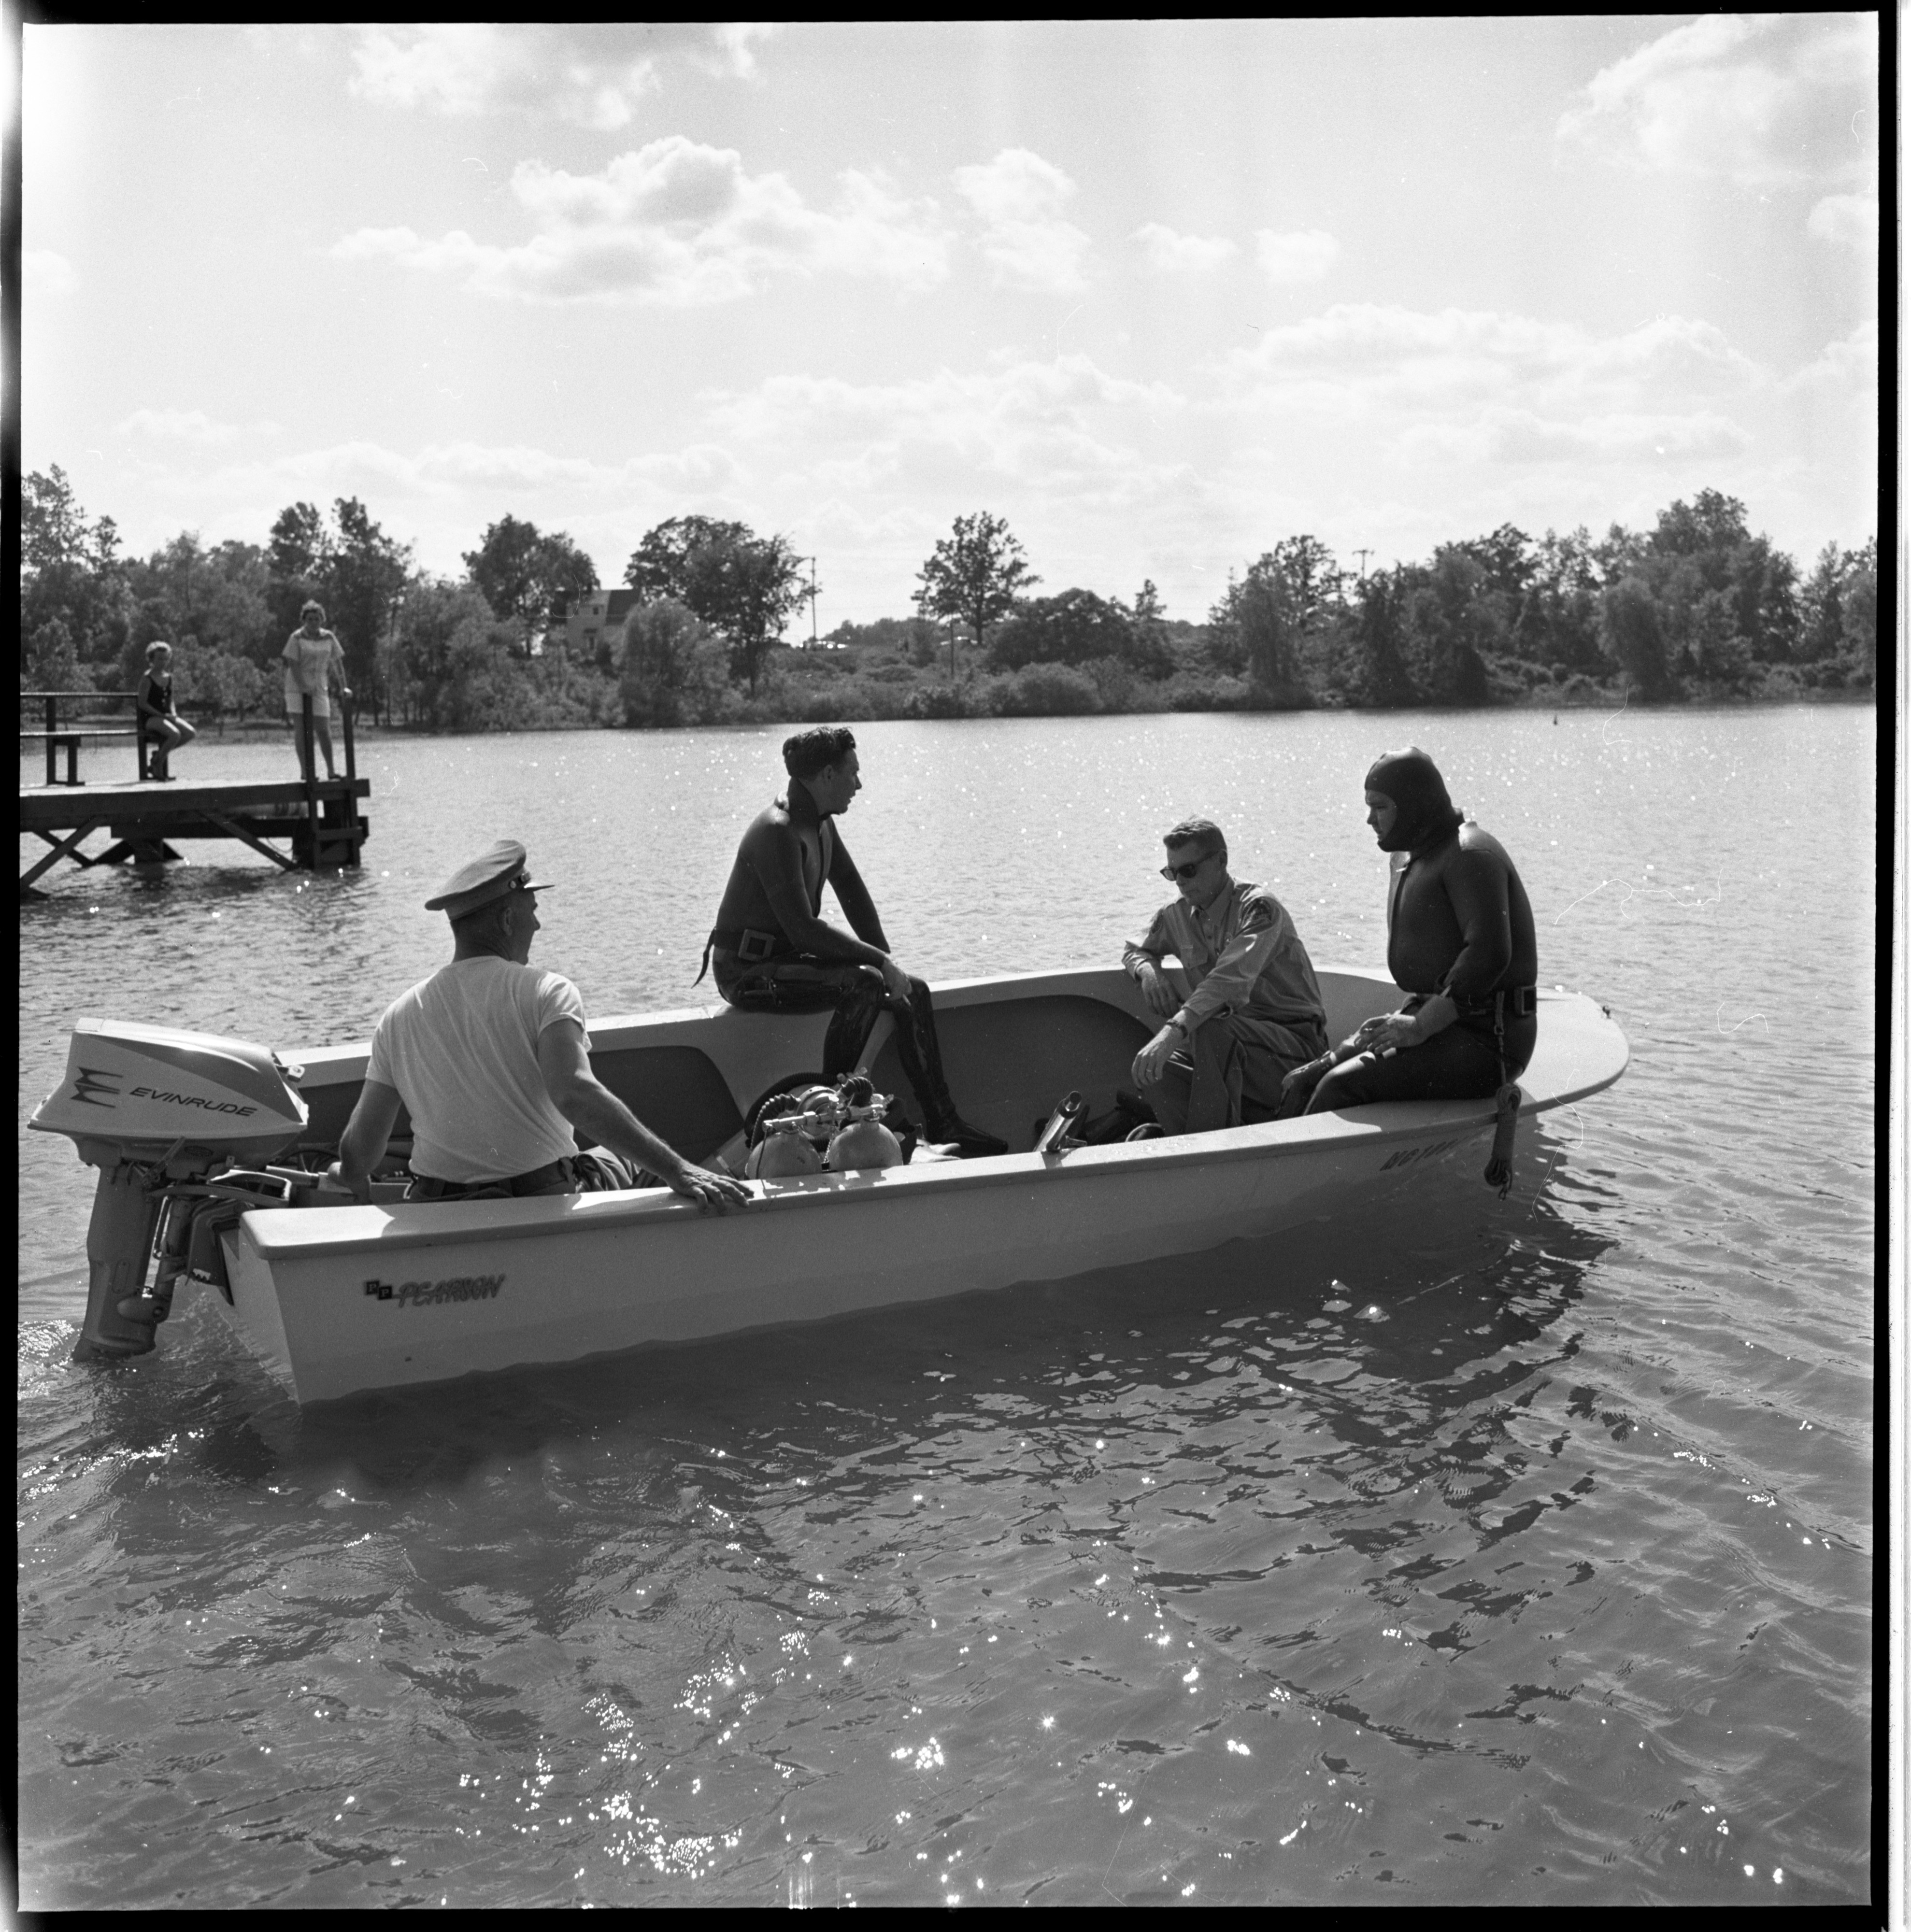 Ann Arbor Police, Sheriff's Deputies, & Local Divers, Search For The Body Of Richard Otto In Second Sister Lake, June 1961 image